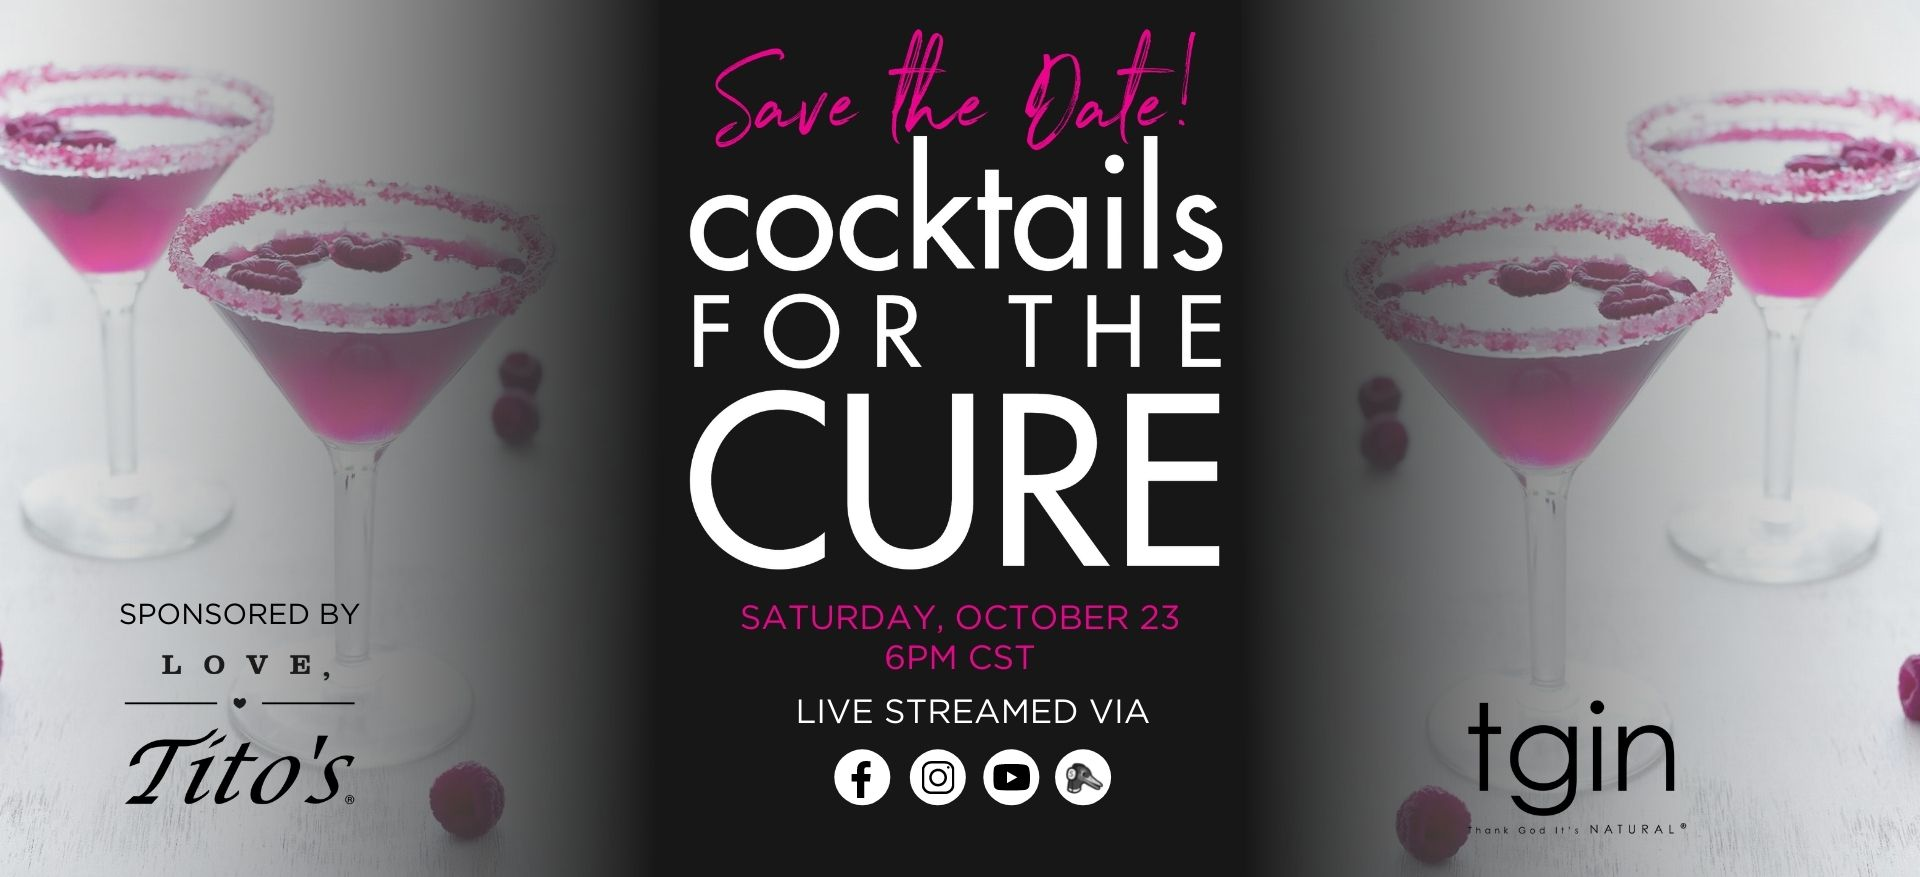 cocktails for the cure awareness October sale Chris-tia donaldson tgin thank god its natural